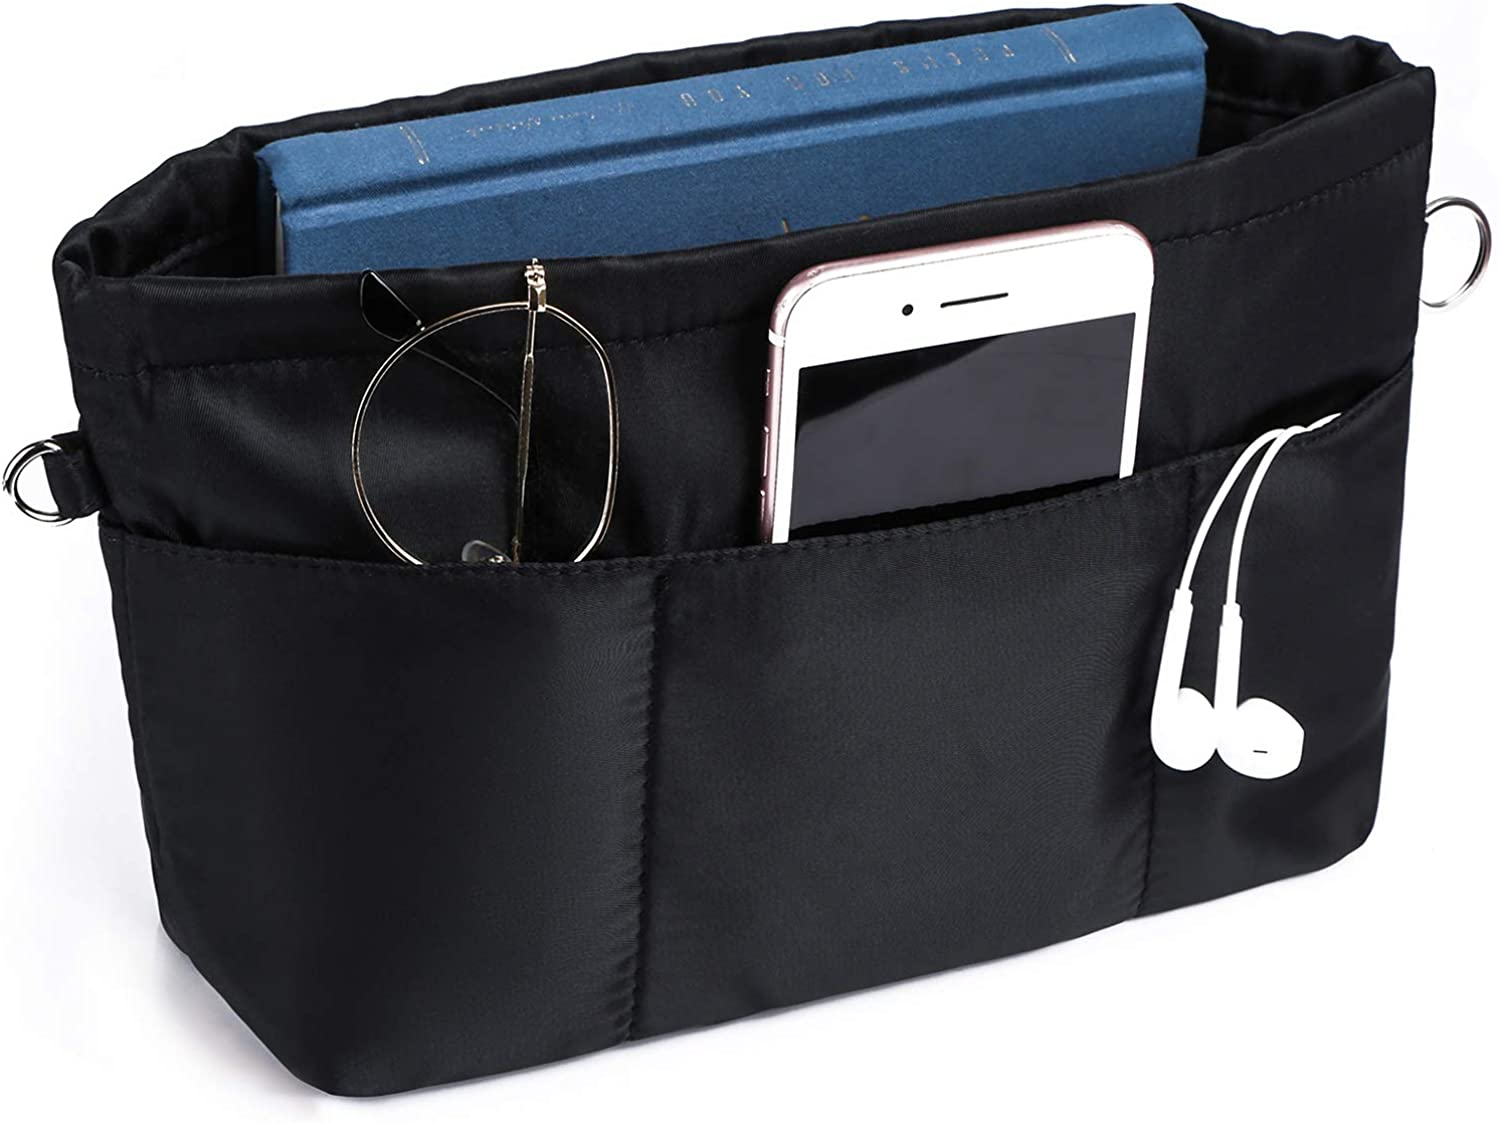 VANCORE Purse Organizer Insert with 13 Pockets, Tote Handbag Insert with Zipper